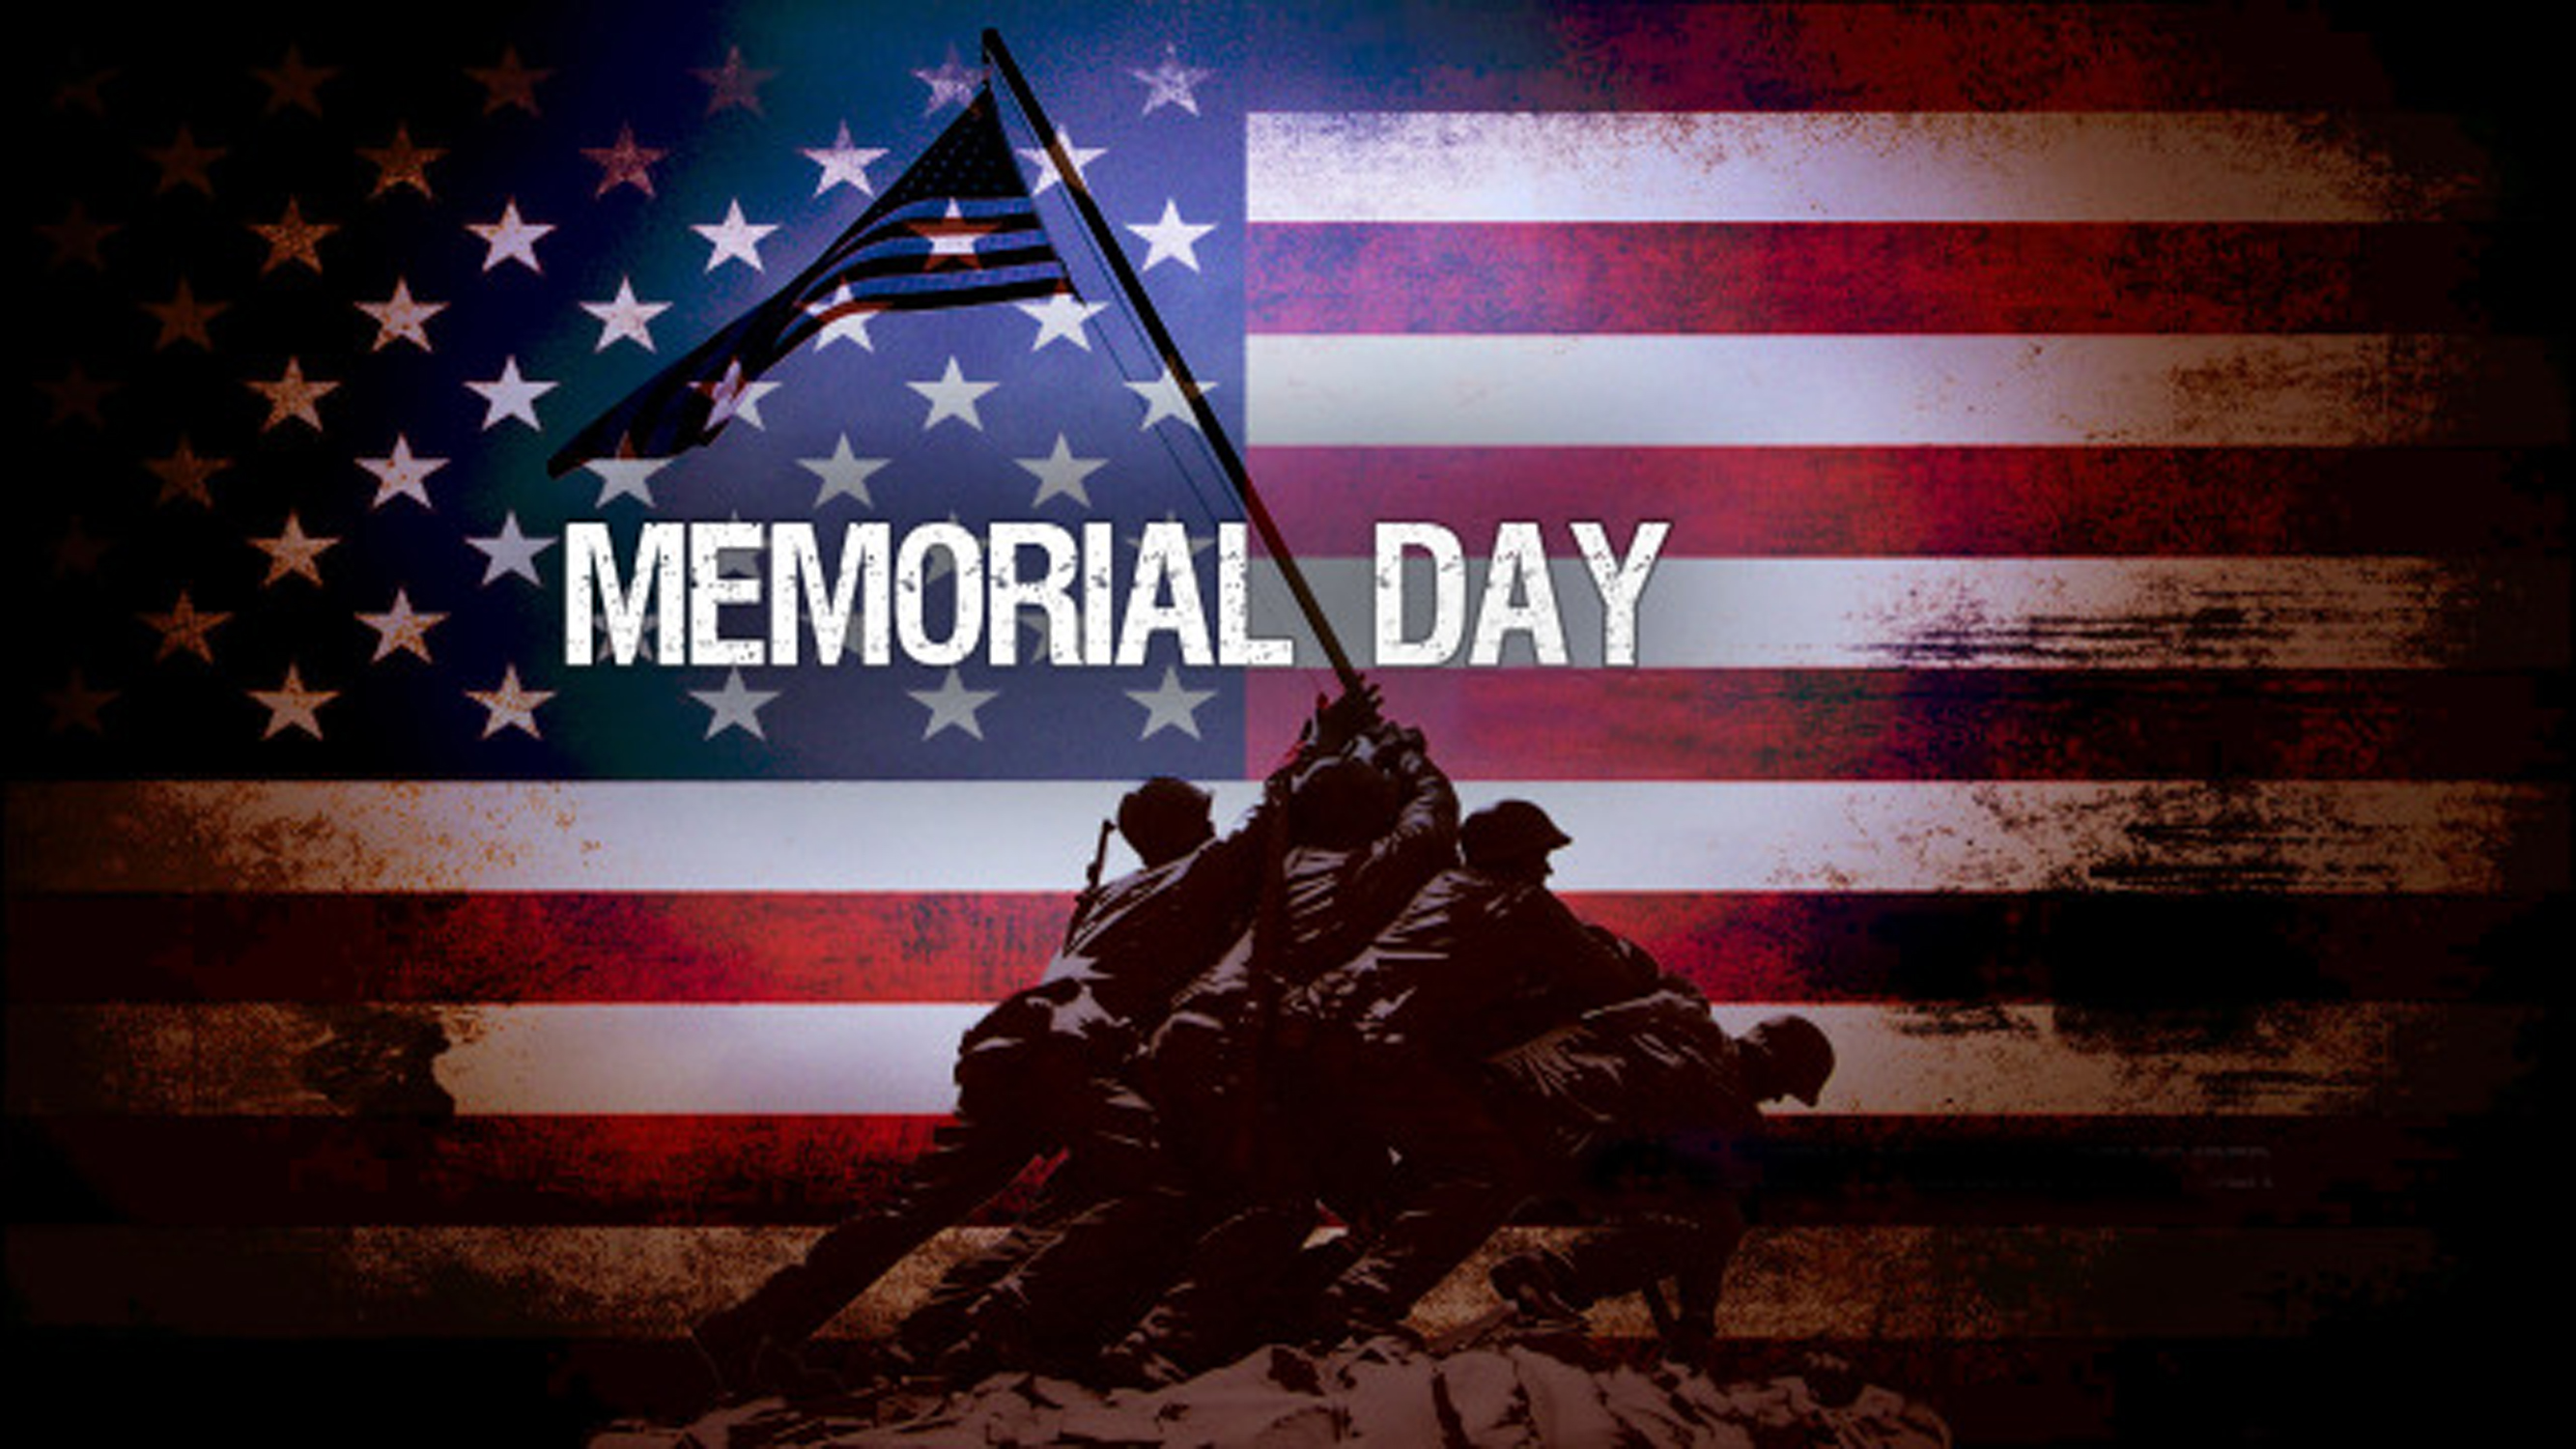 Amazing Memorial Day Pictures & Backgrounds